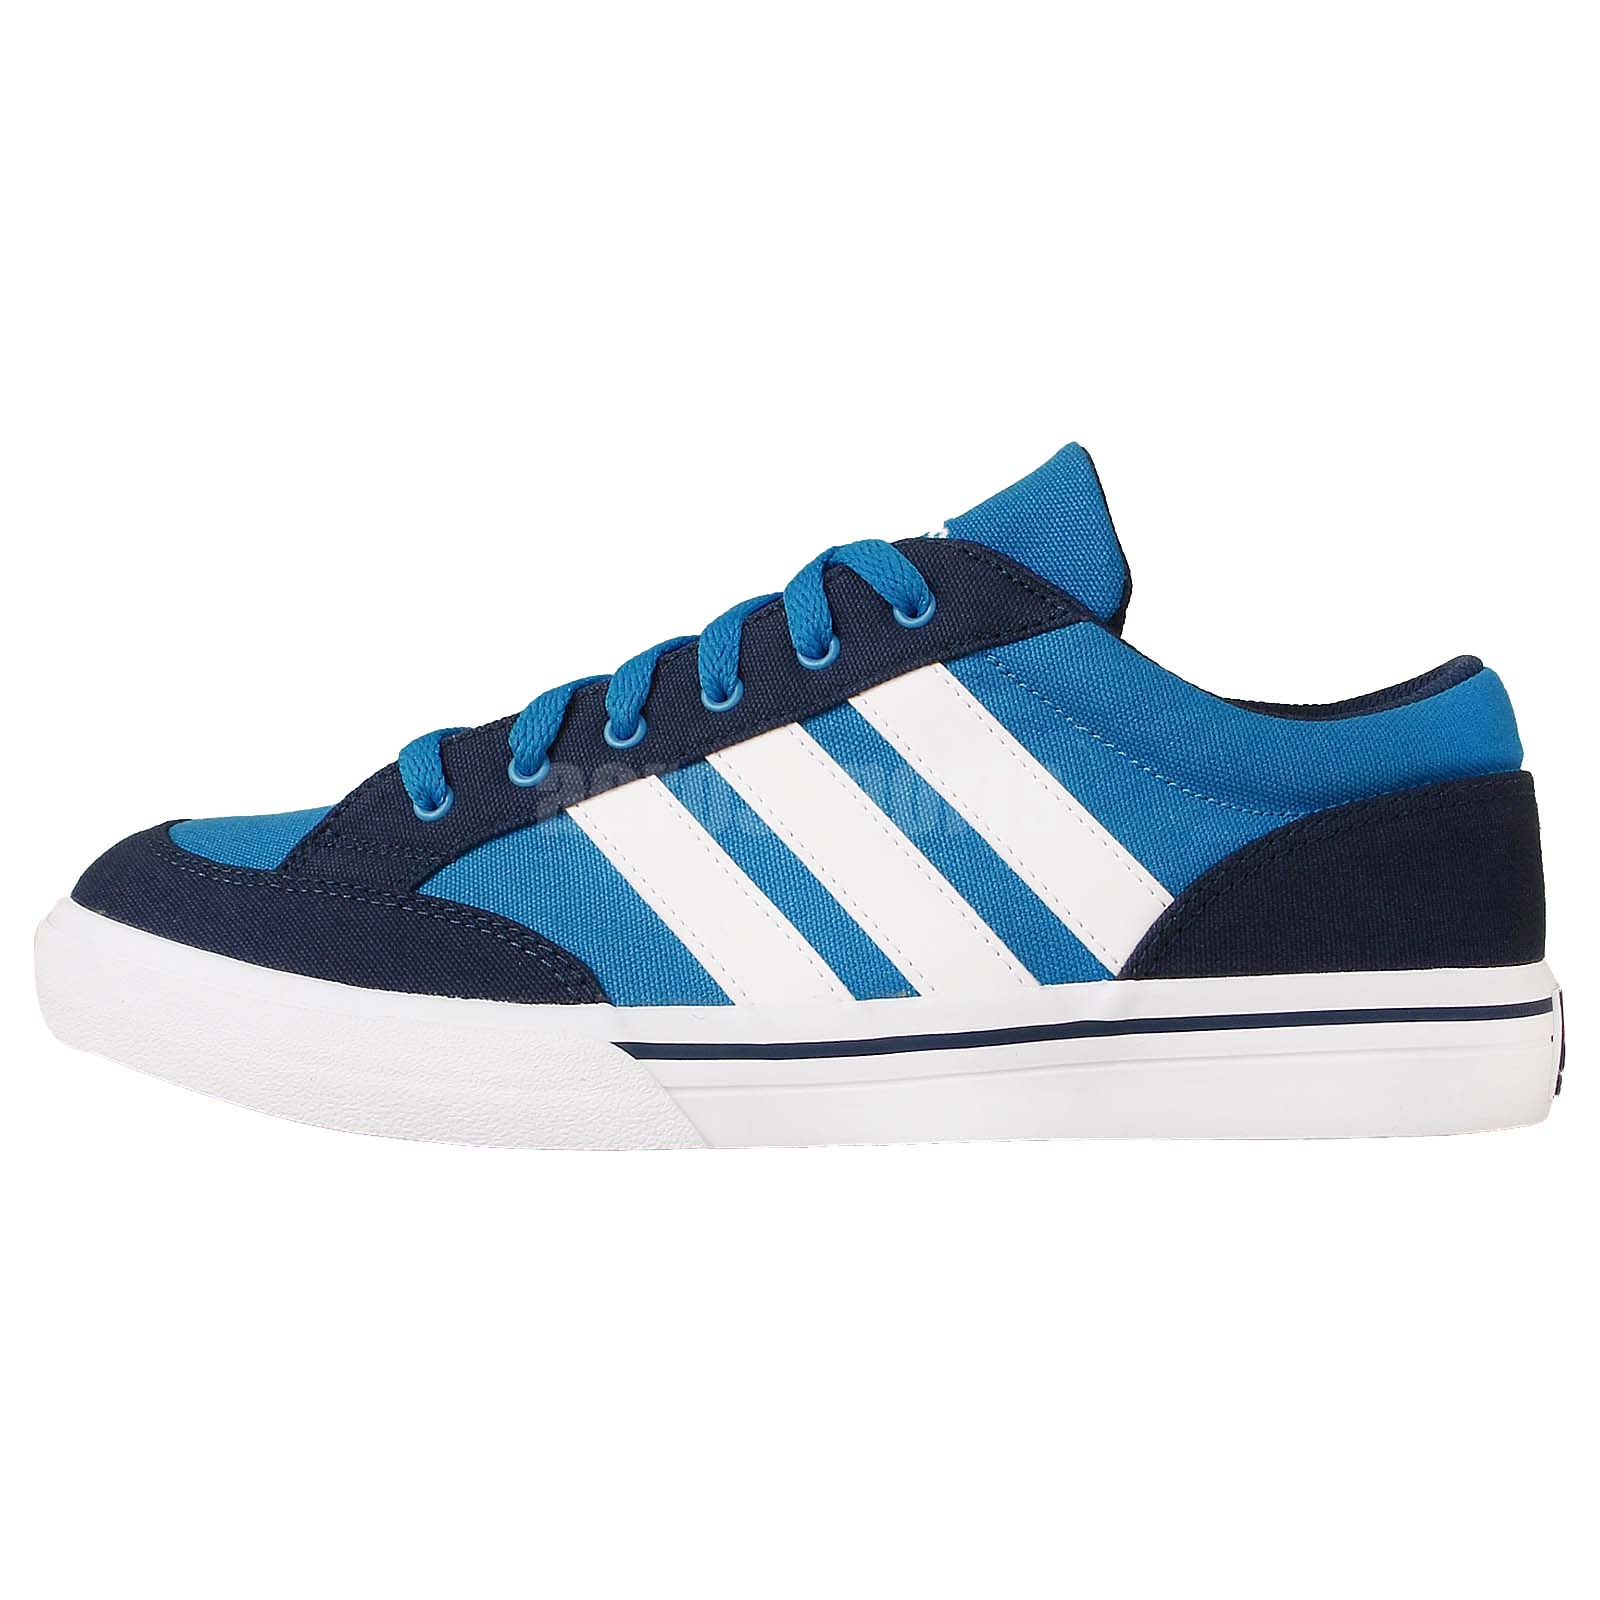 adidas gvp canvas str blue white 2014 mens tennis shoes